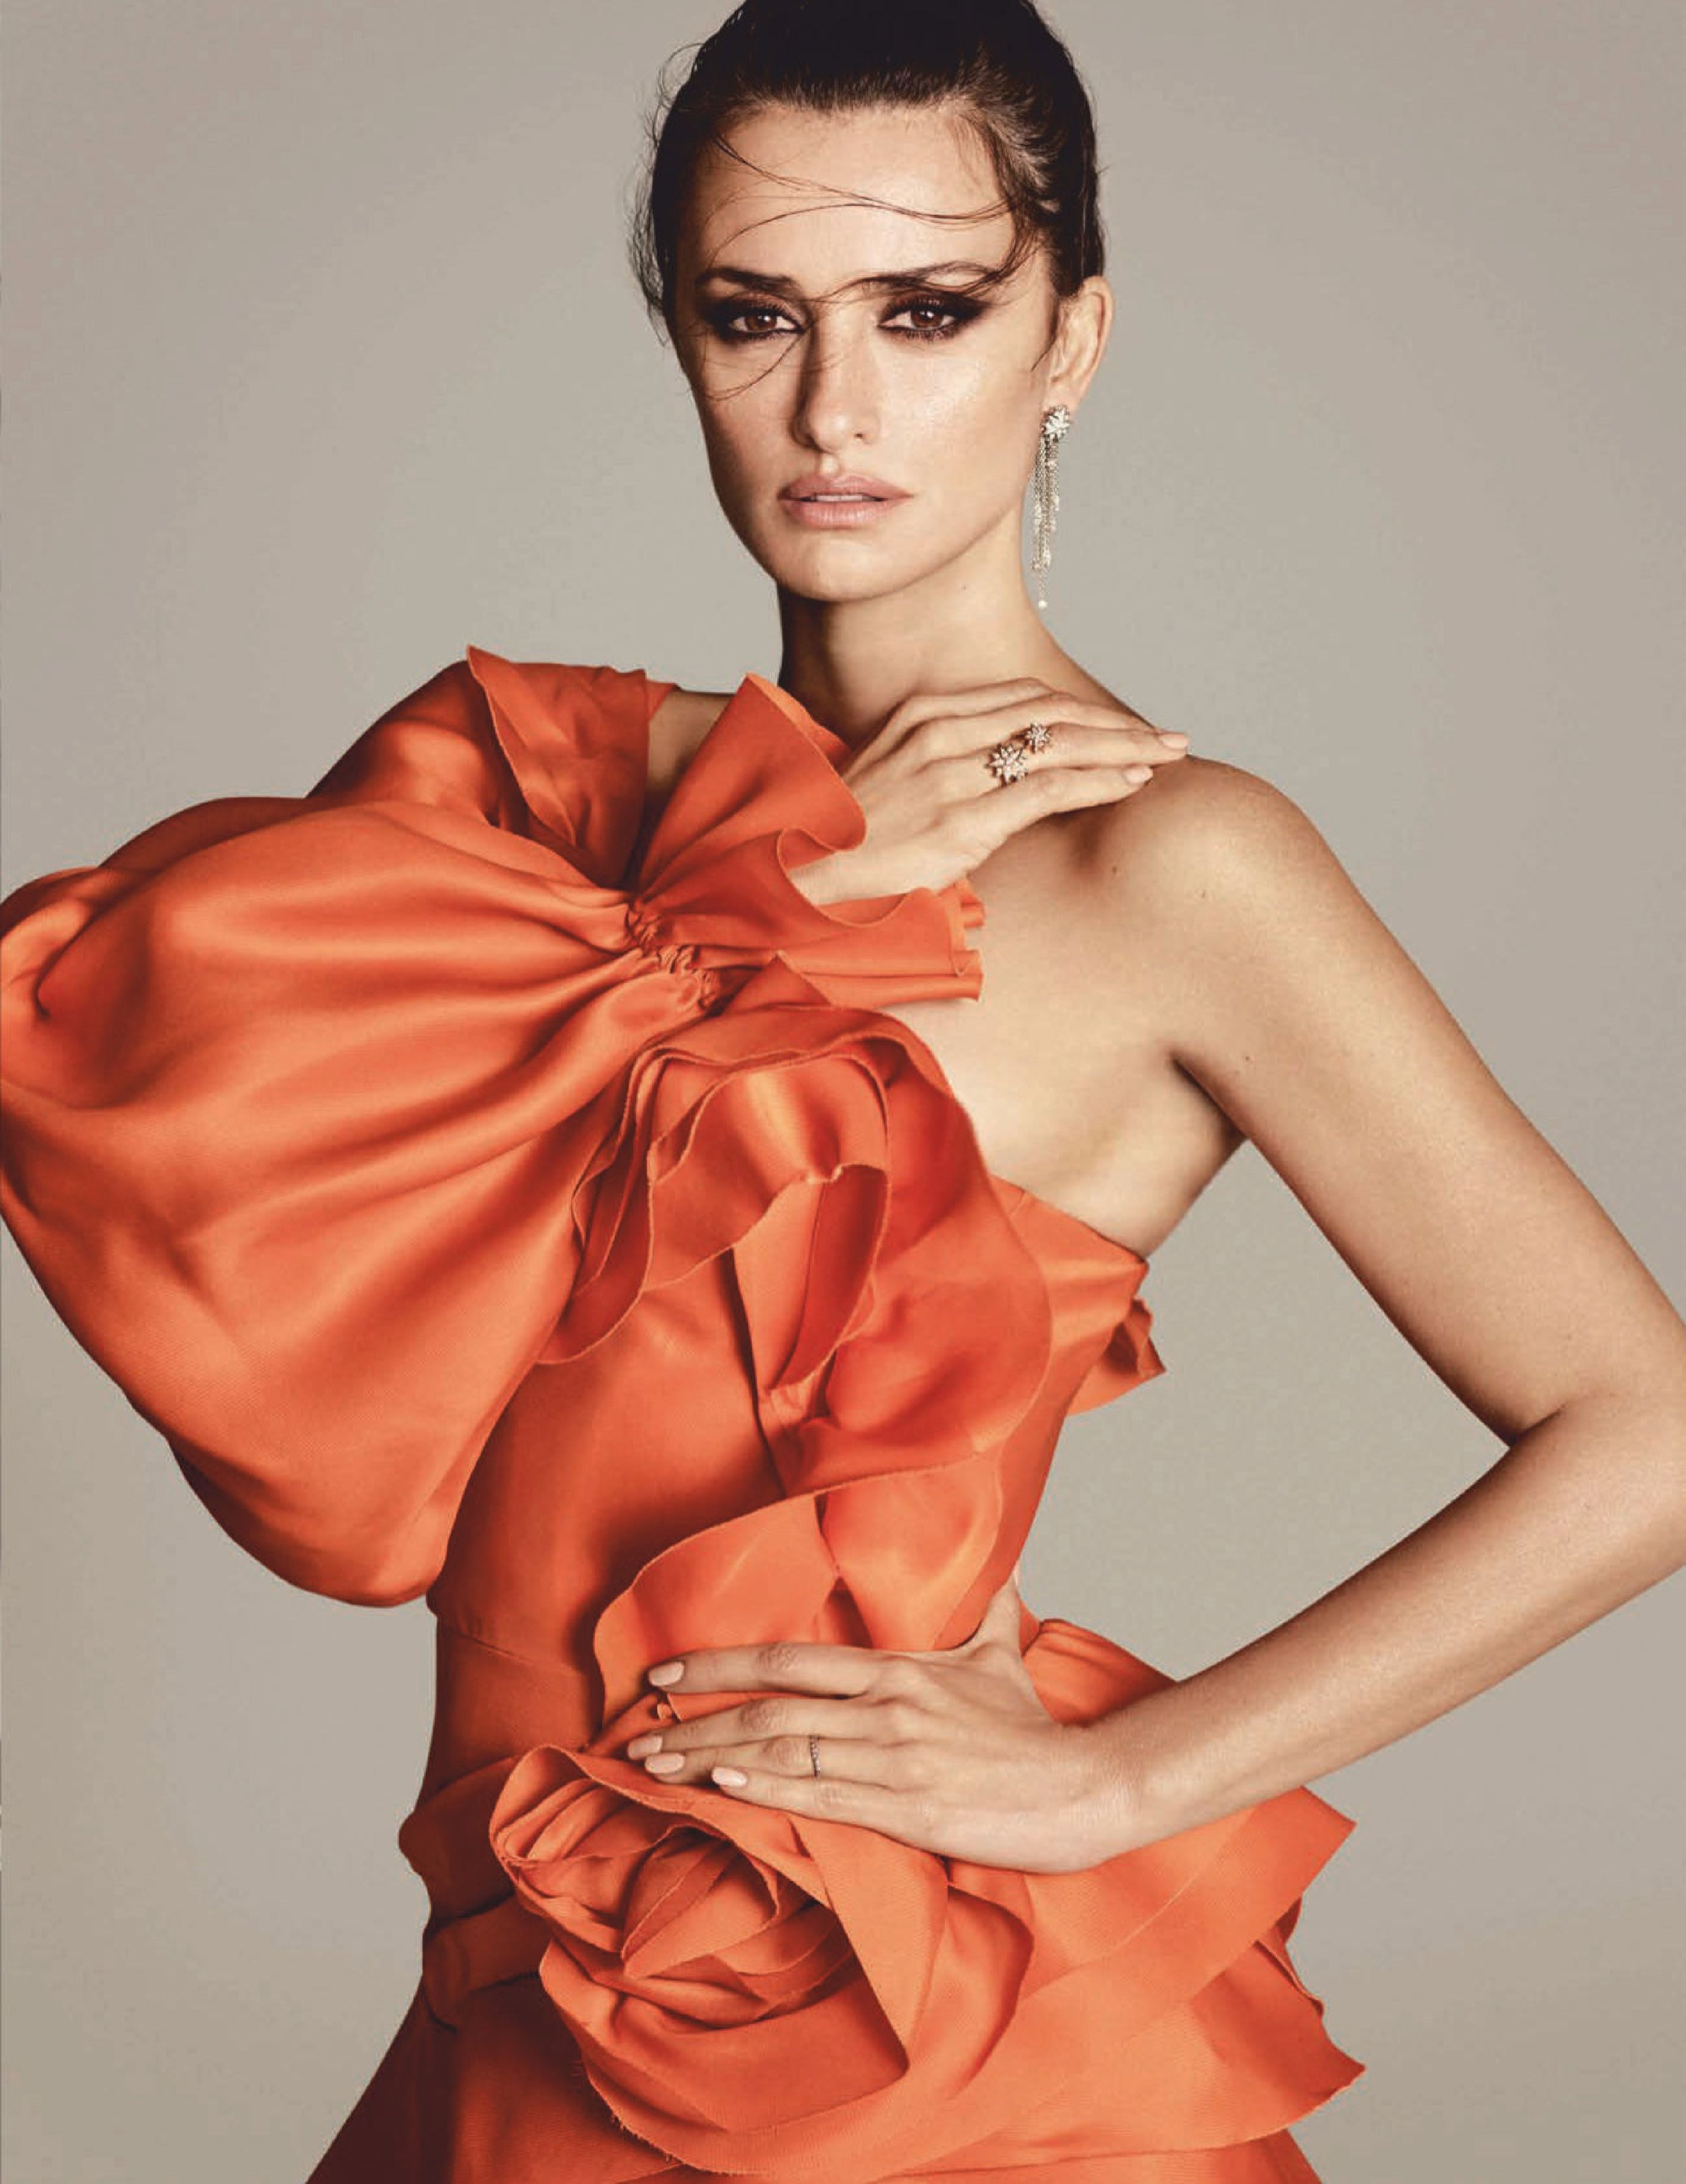 Penelope-Cruz-Luigi-Iango-Vogue-Spain-April-2019- (7).jpg